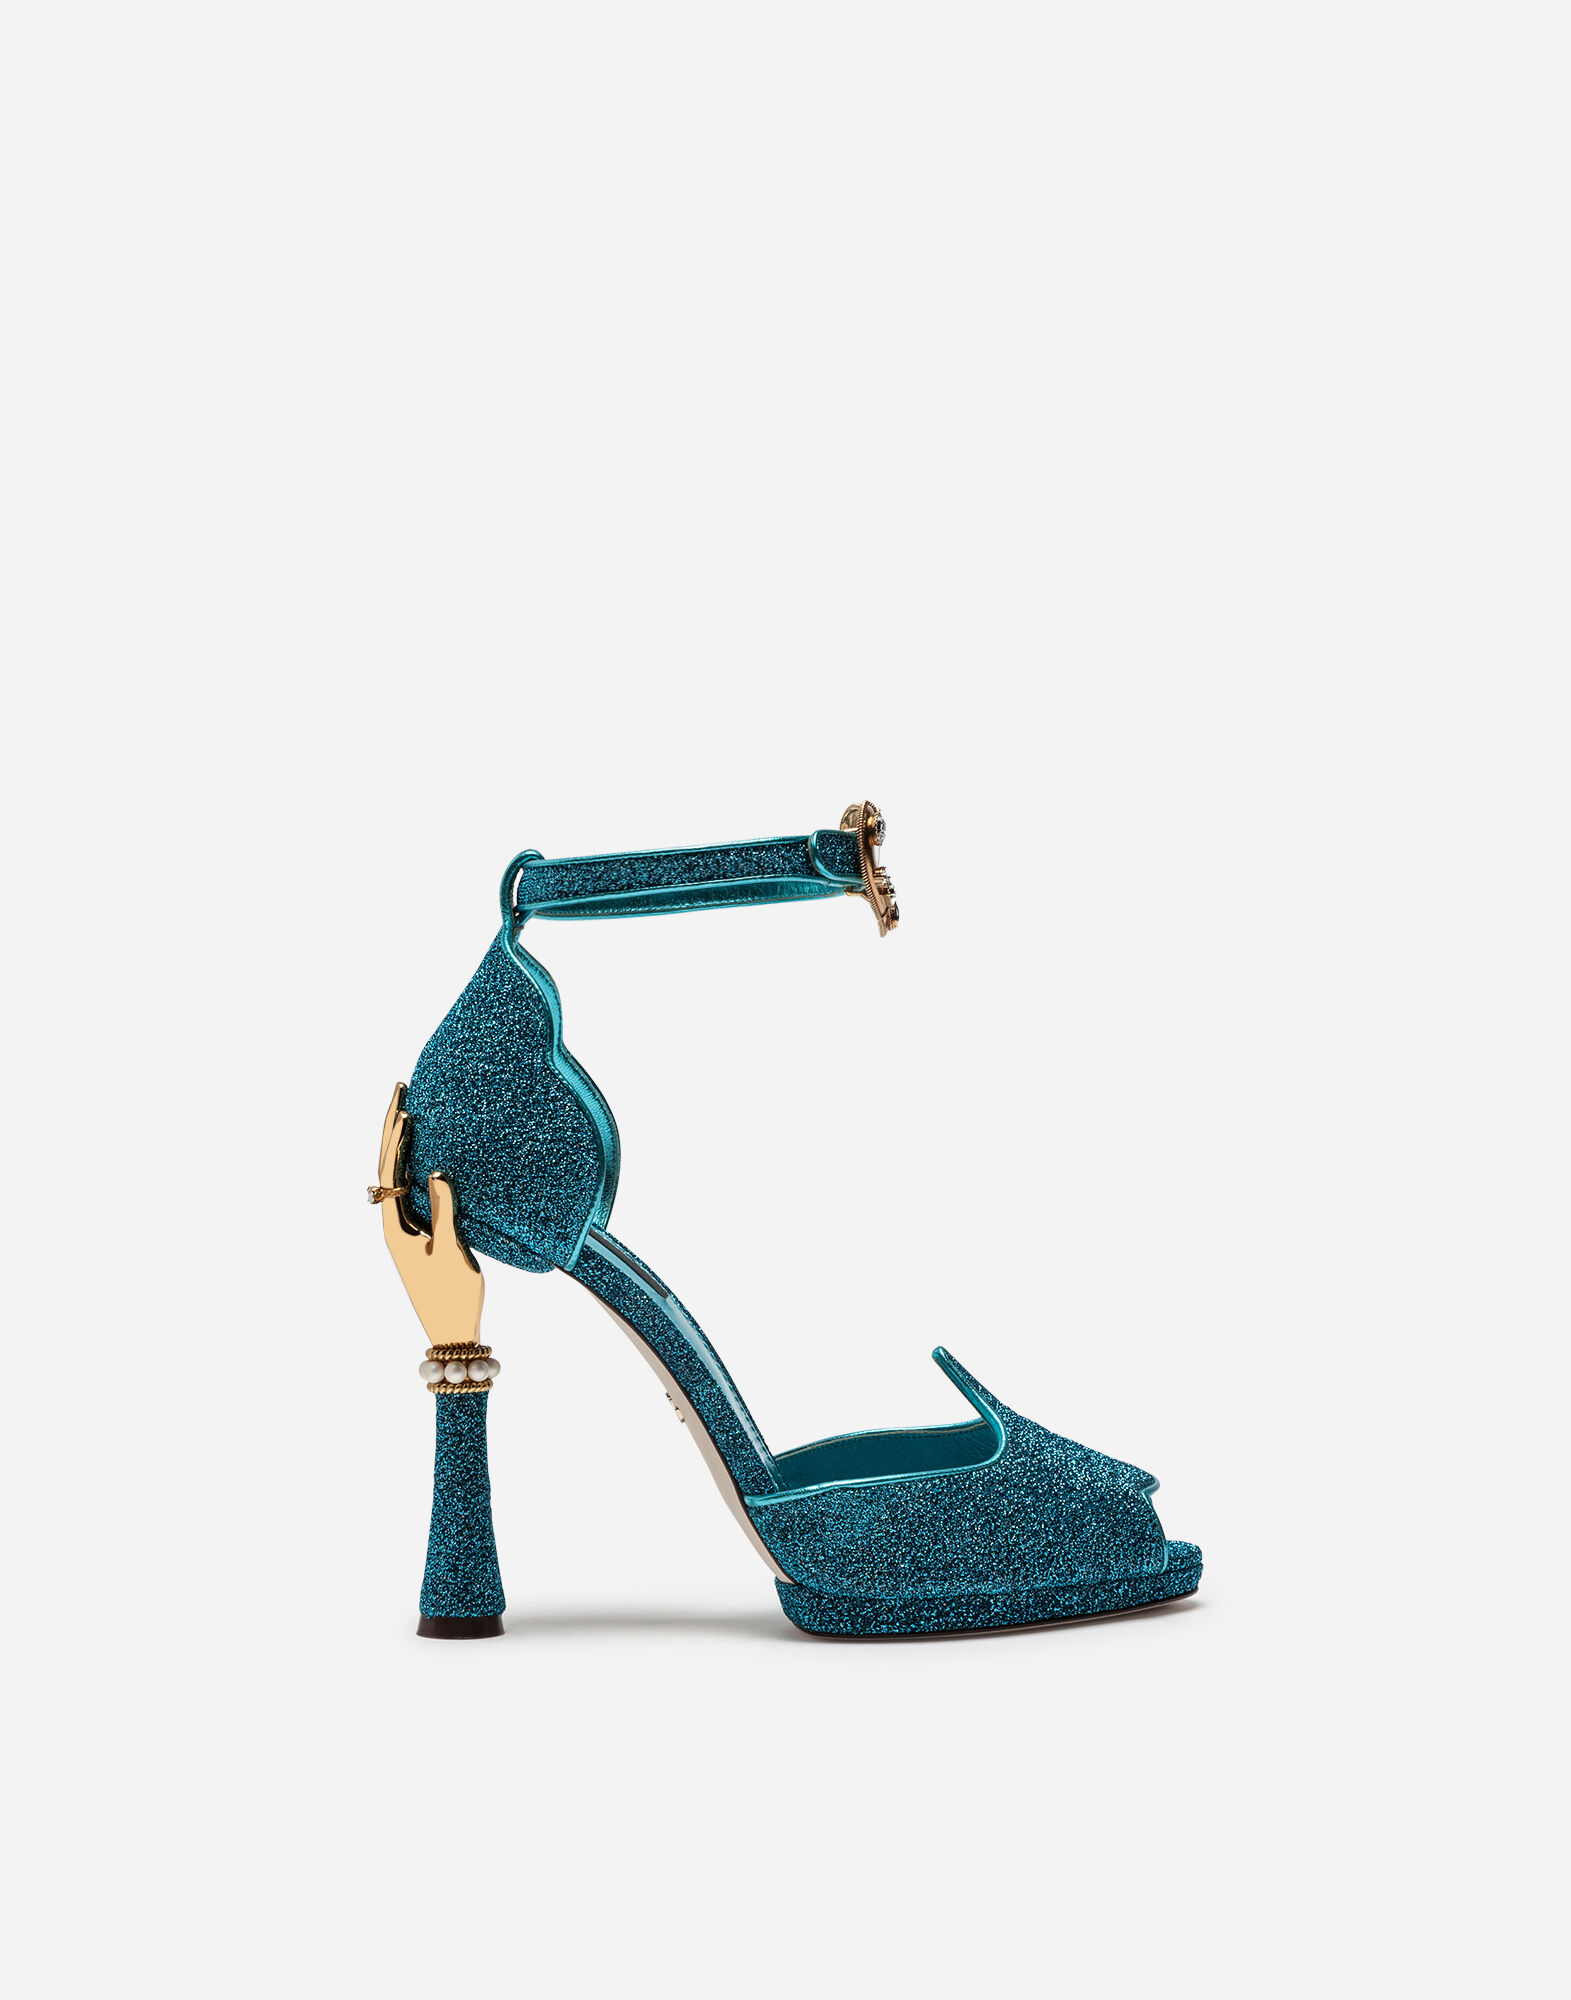 Sandal In Soft Lurex And Mordoré Nappa Leather With Sculpted Heel, Turquoise